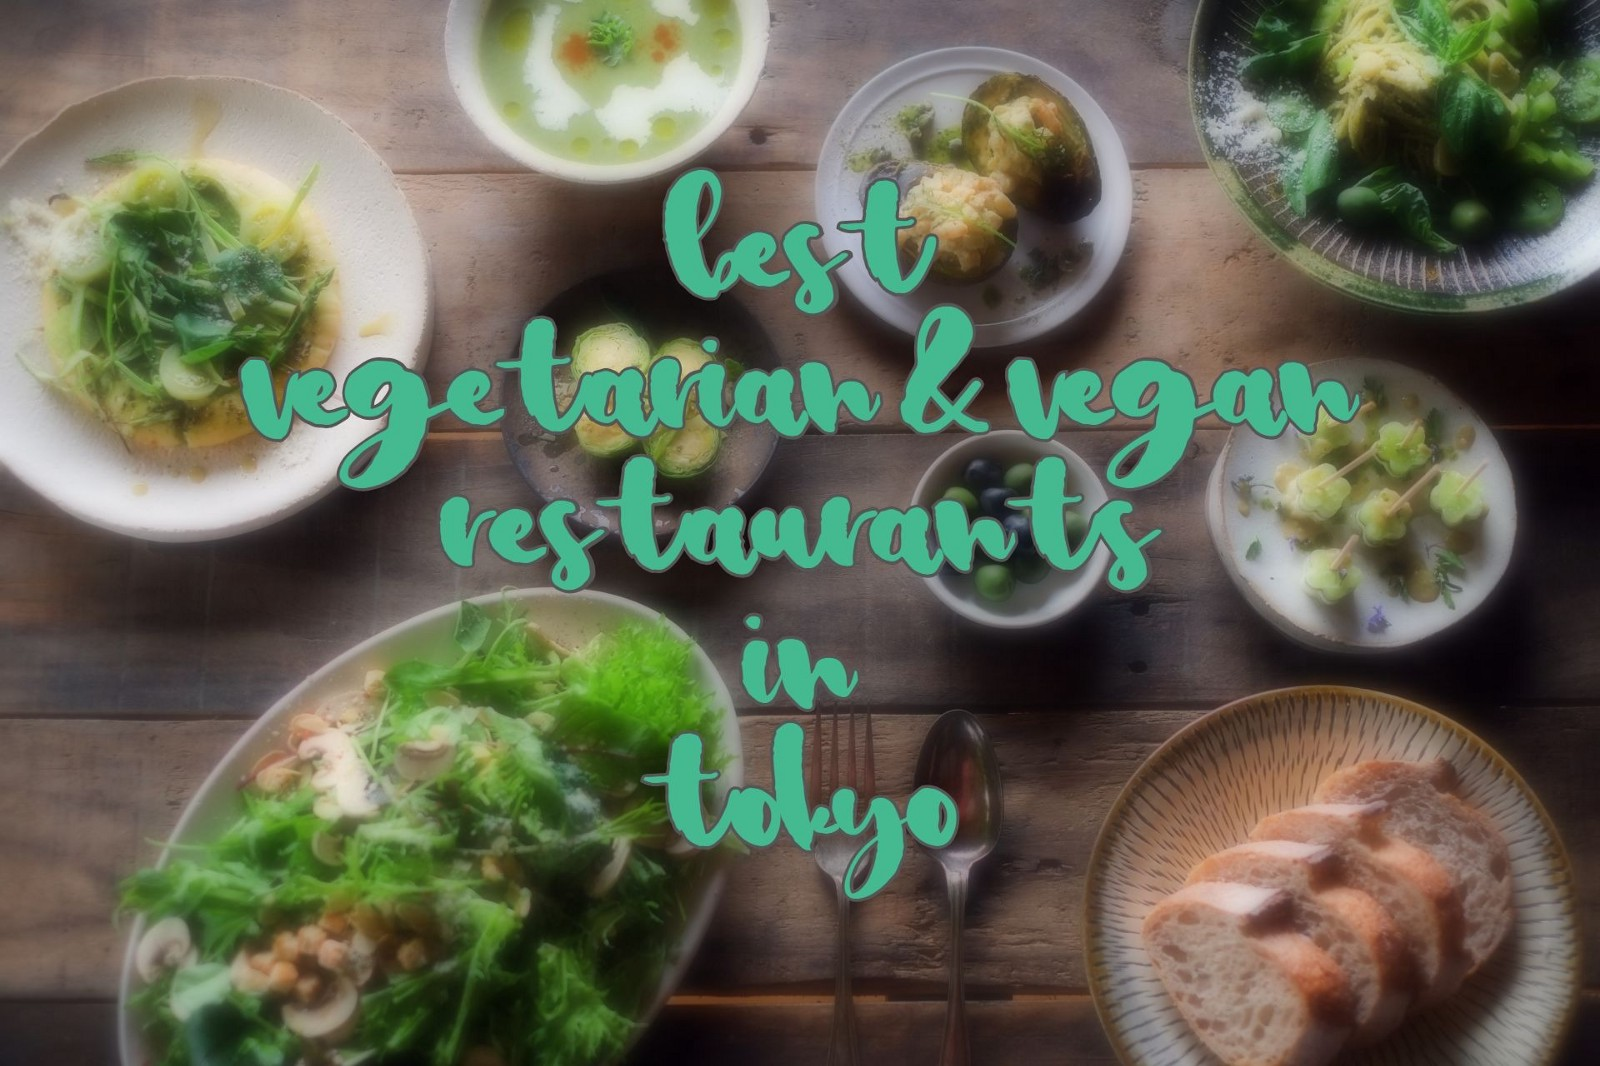 Top 10 Vegetarian and Vegan Restaurants in Tokyo